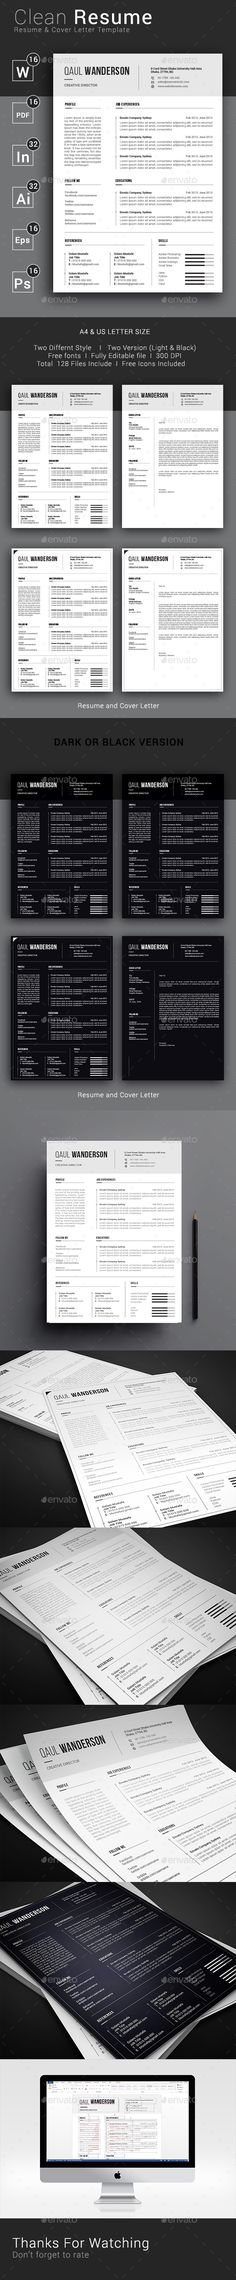 Resume Templates Indesign Endearing Modern And Minimal Resume And Cover Template  Cover Letter Template .